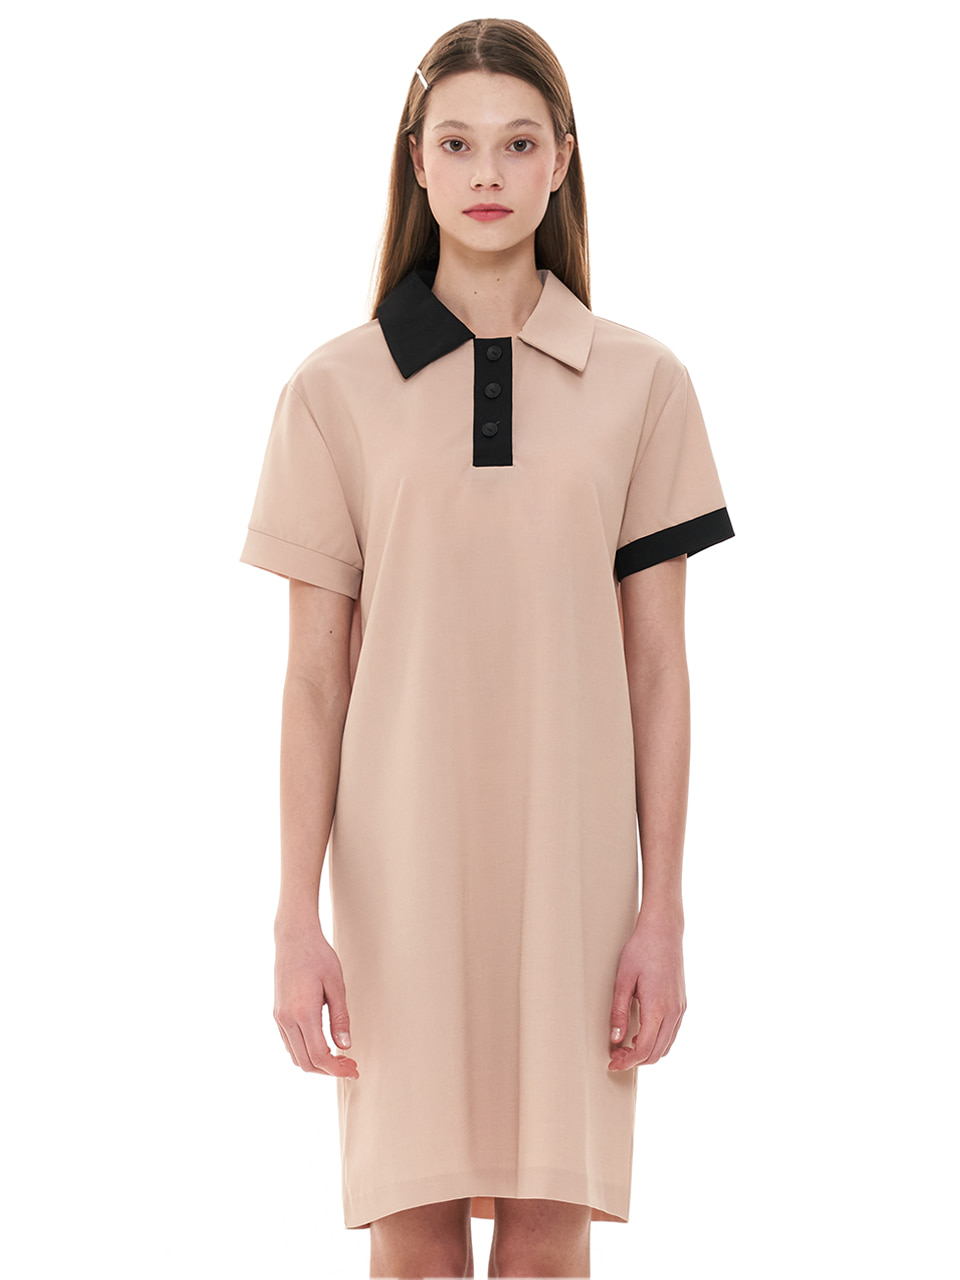 (CTC1) BOXY COLORED COLLAR DRESS BEIGE